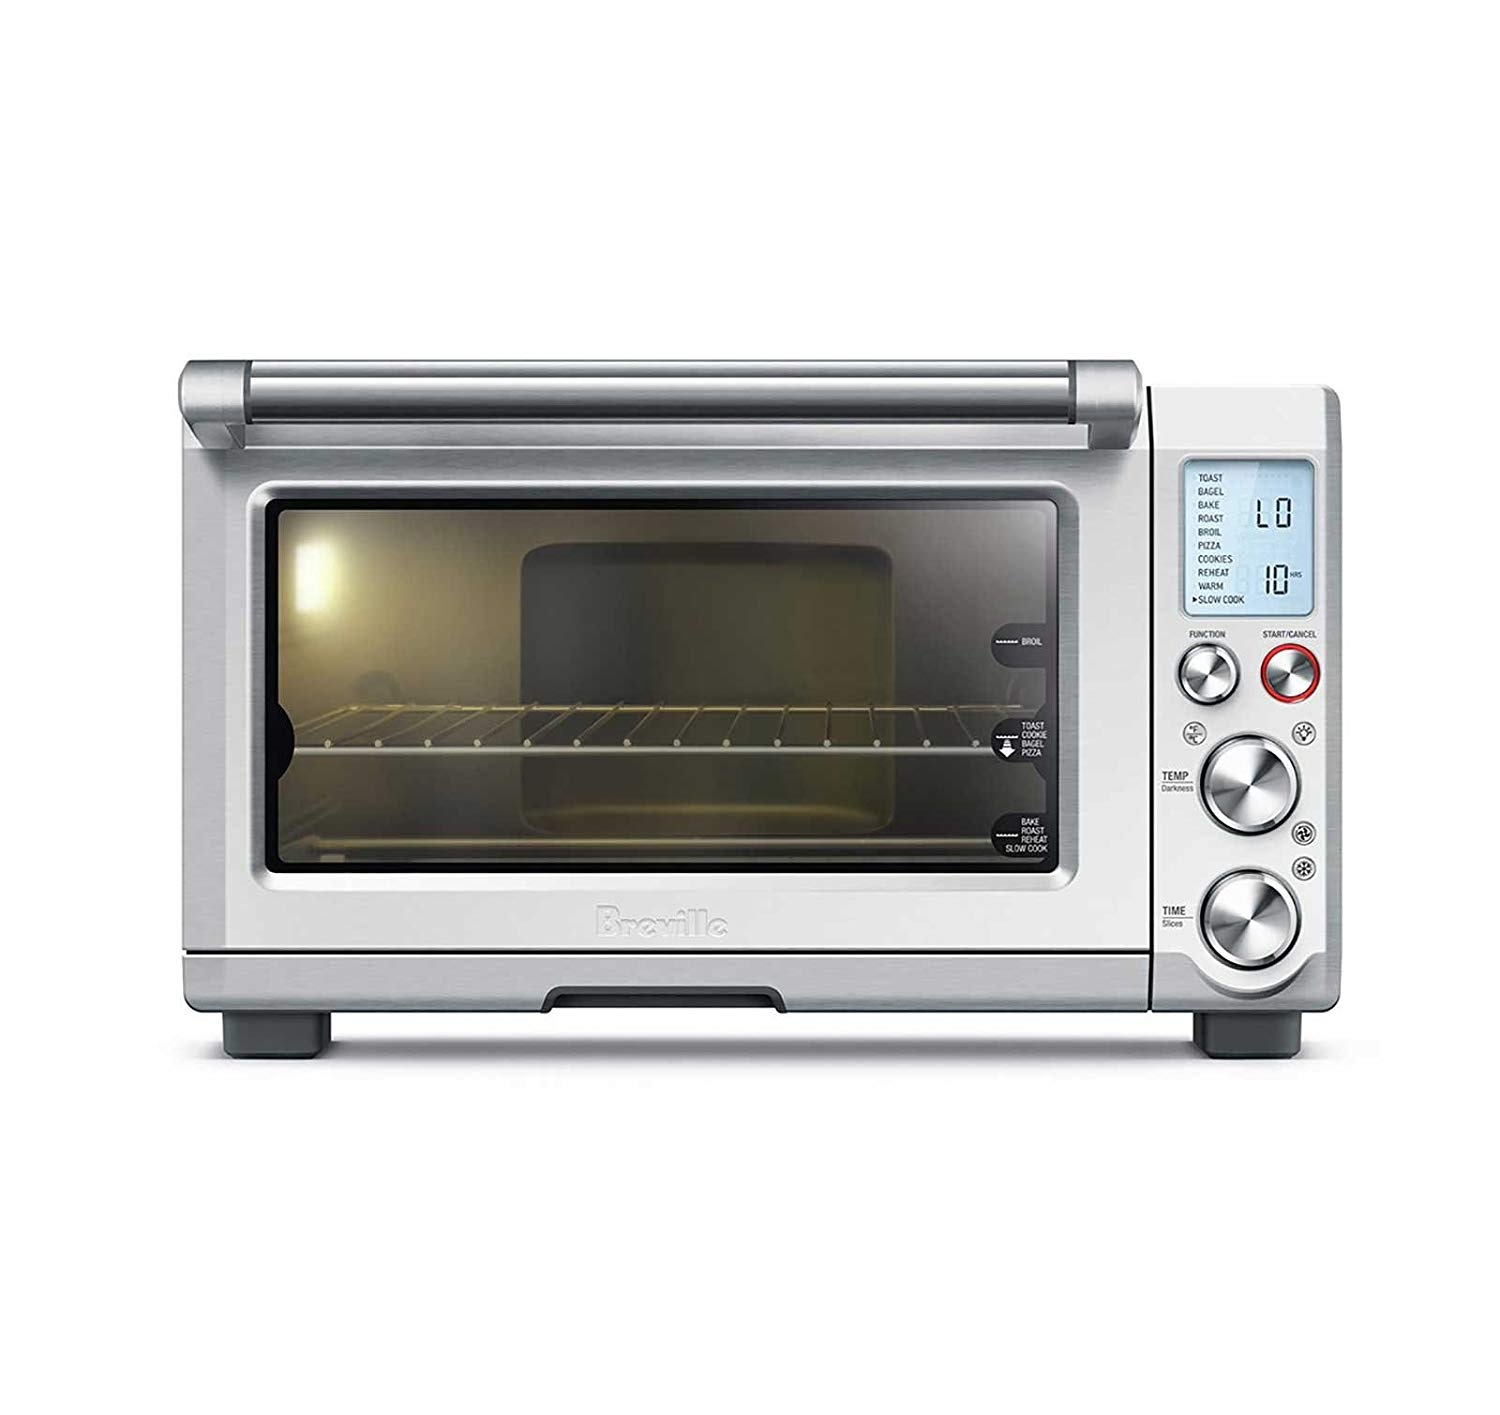 Breville Smart Convection Toaster Oven Pro